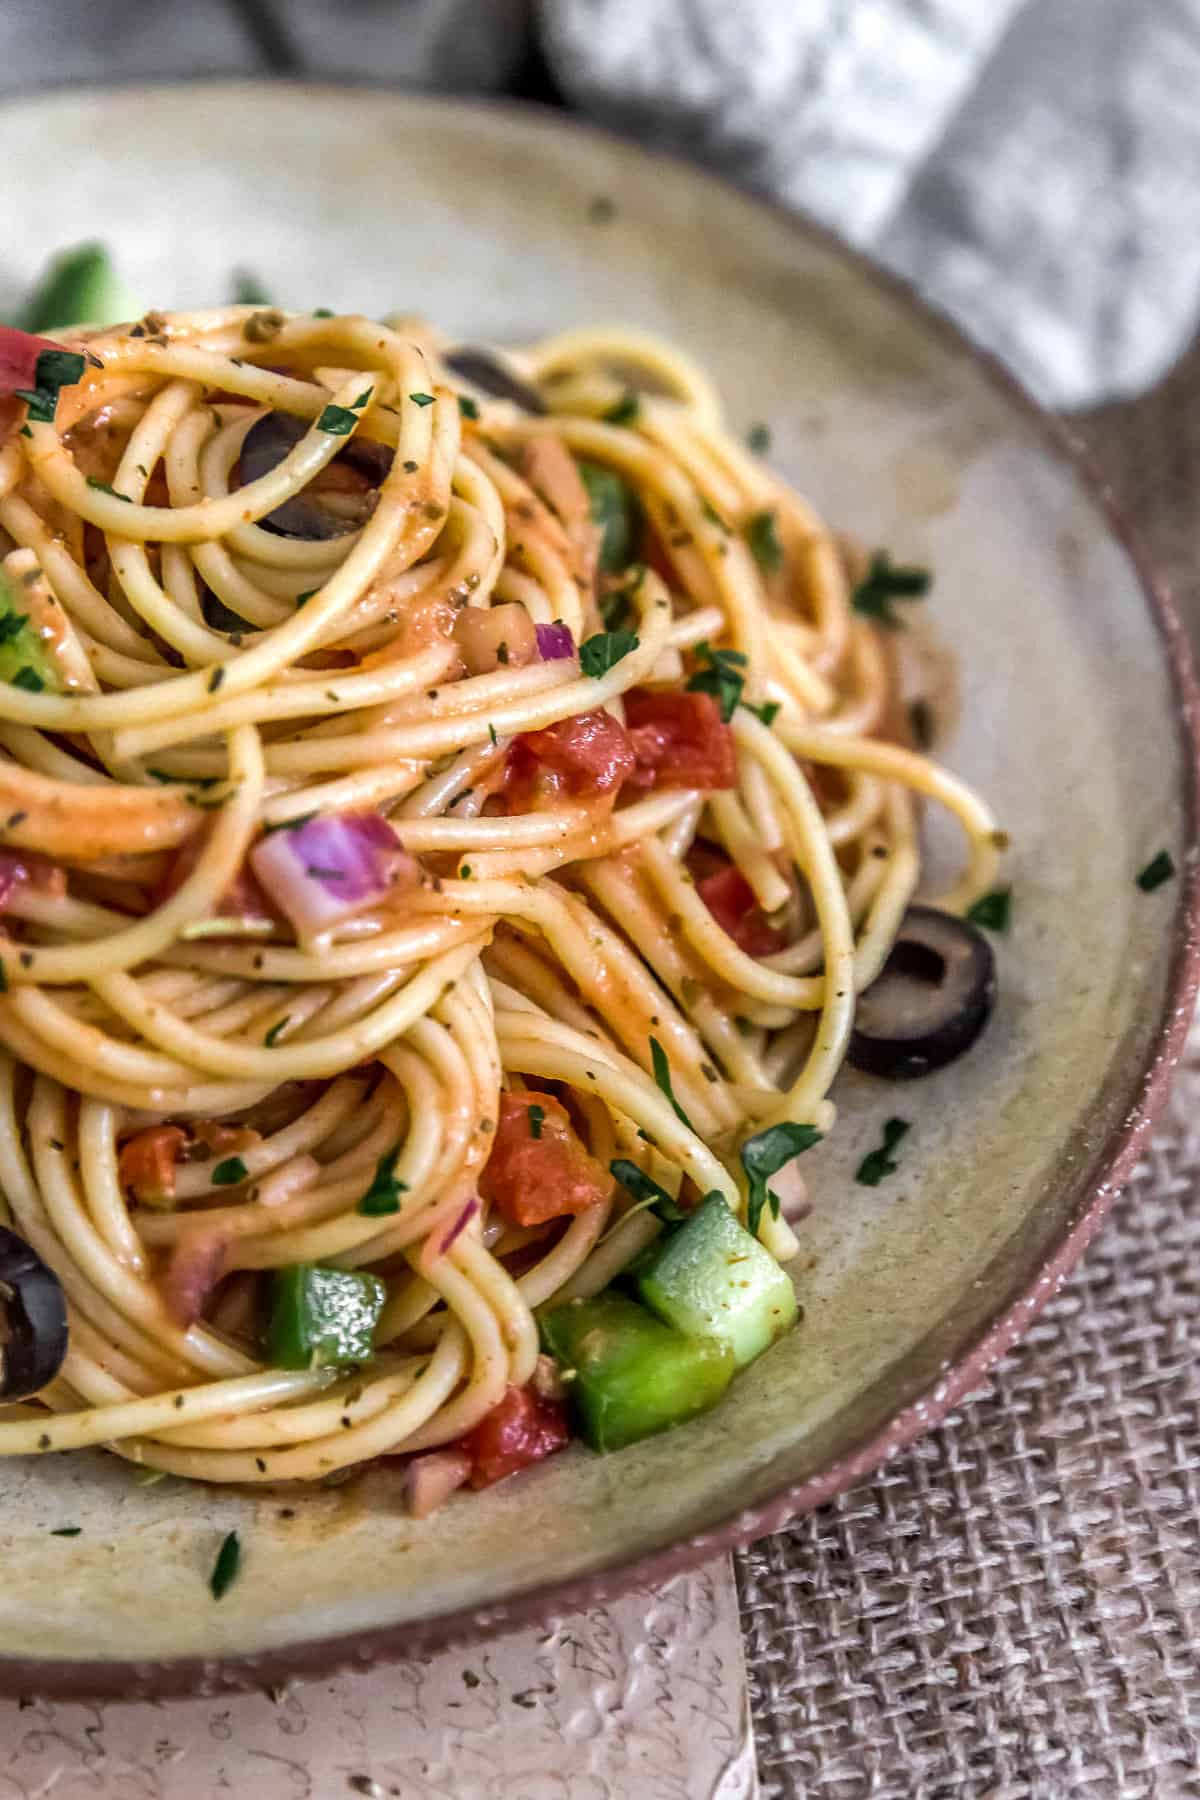 Healthy Italian Spaghetti Salad piled high on a plate